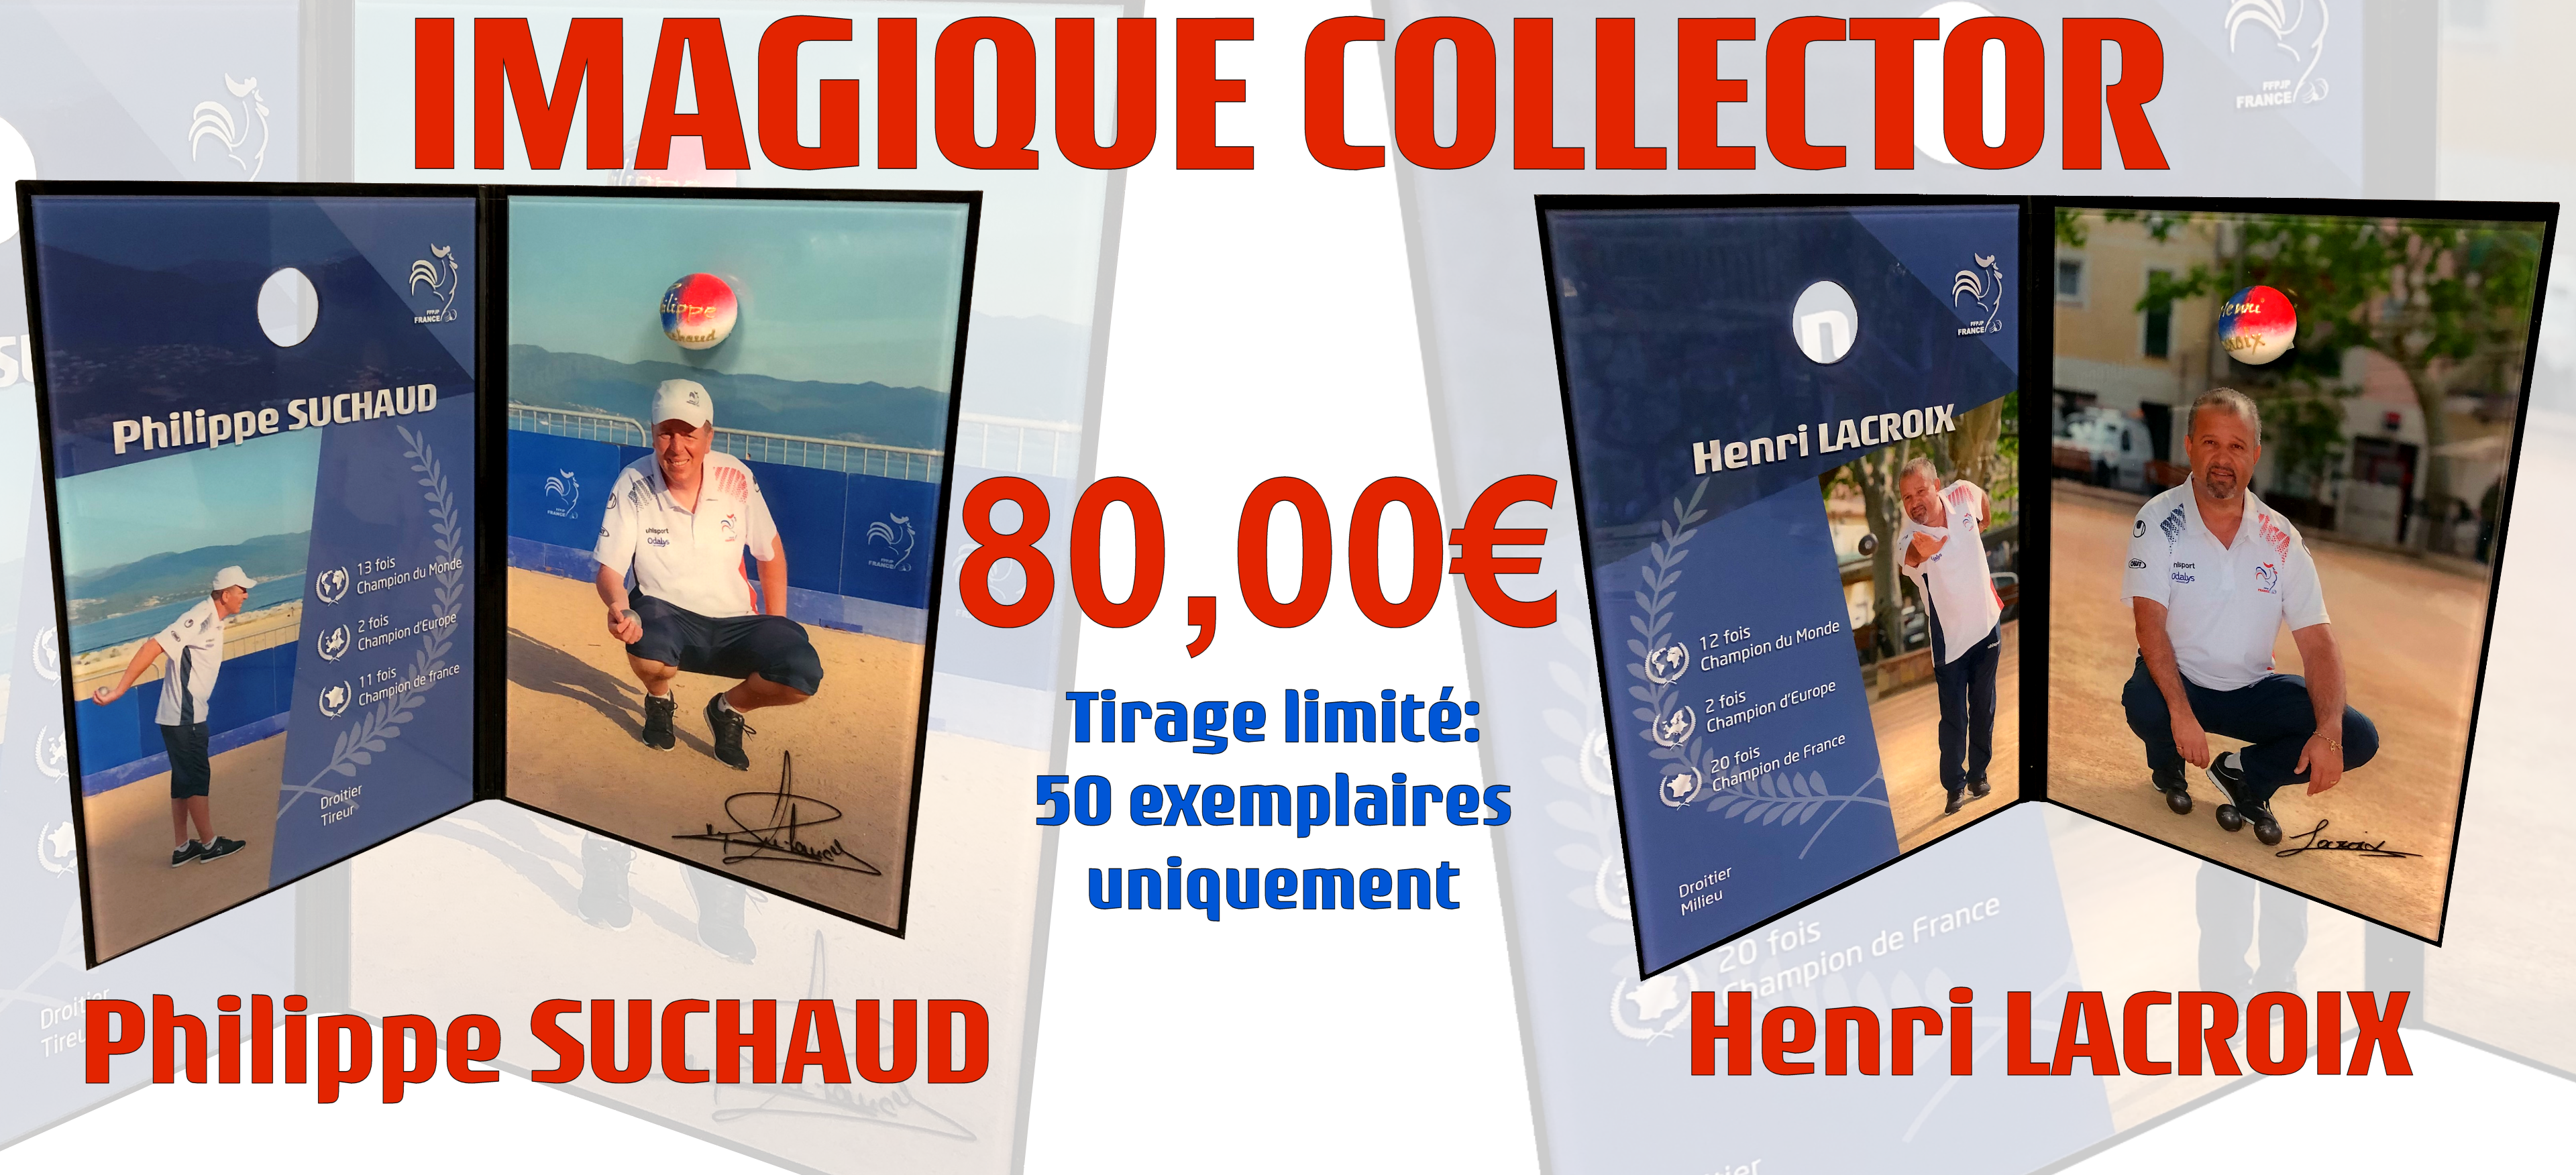 Imagique Collector